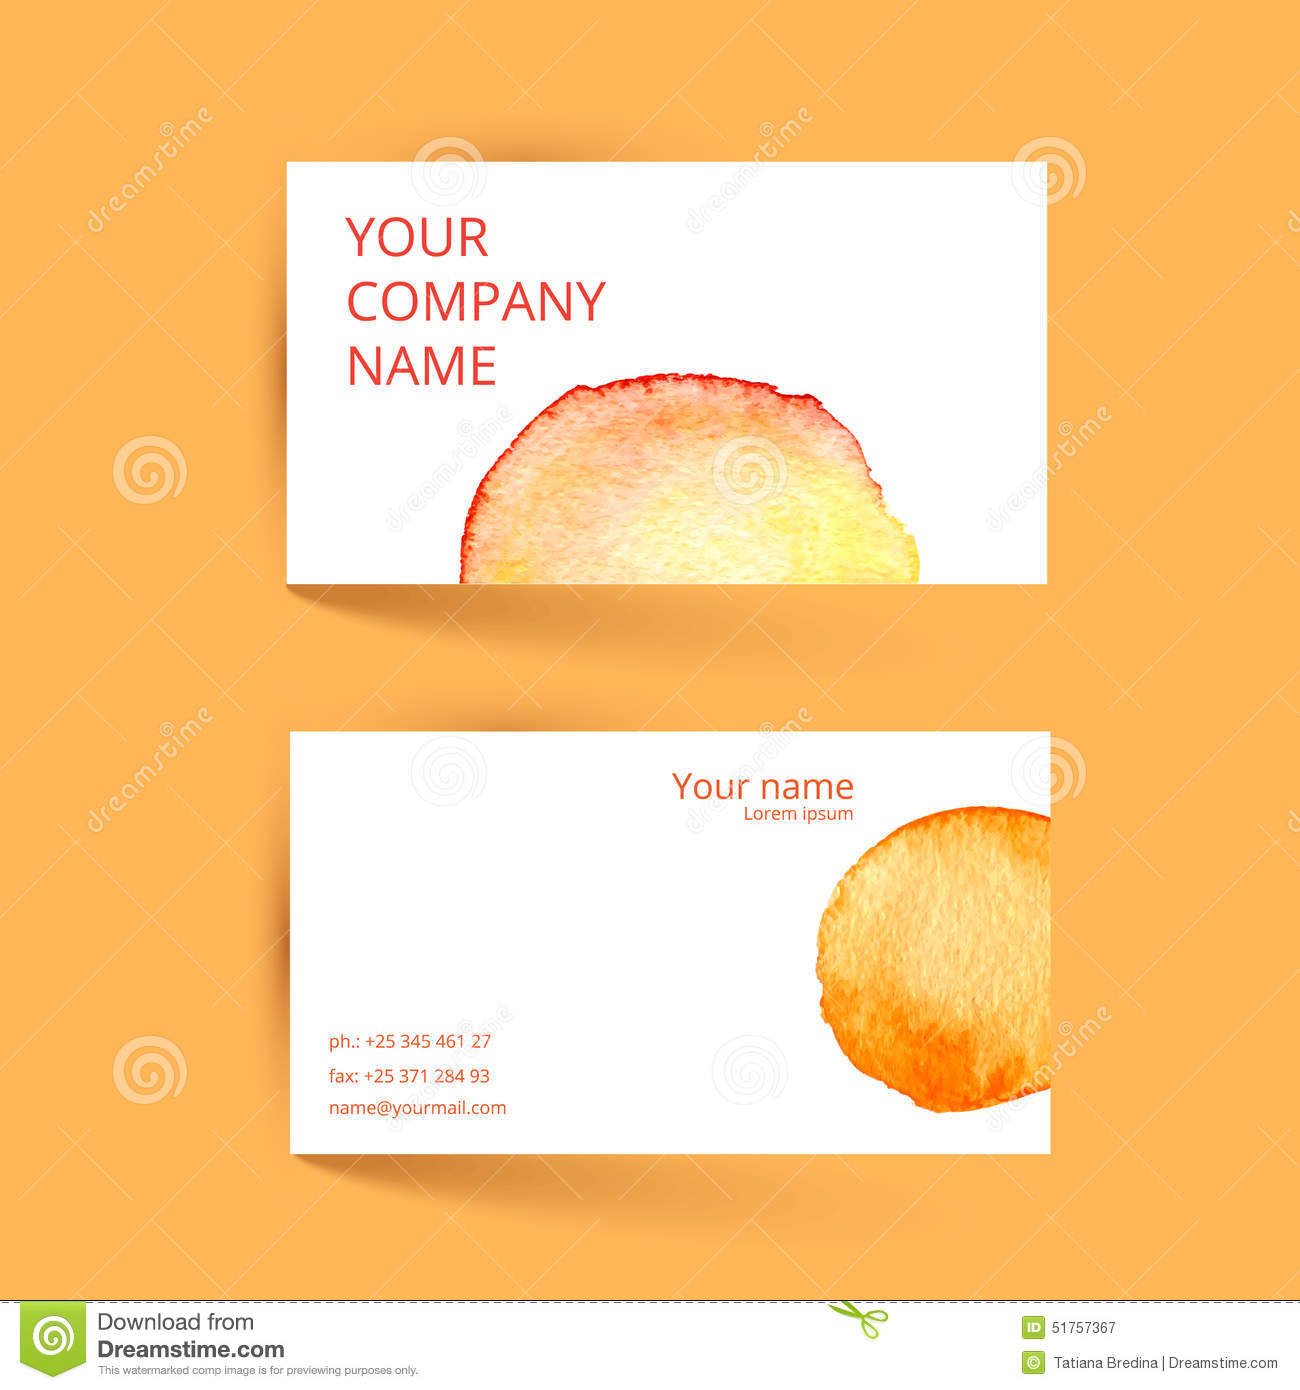 Business card template vector watercolor orange stock vector download business card template vector watercolor orange stock vector illustration of element presentation wajeb Image collections